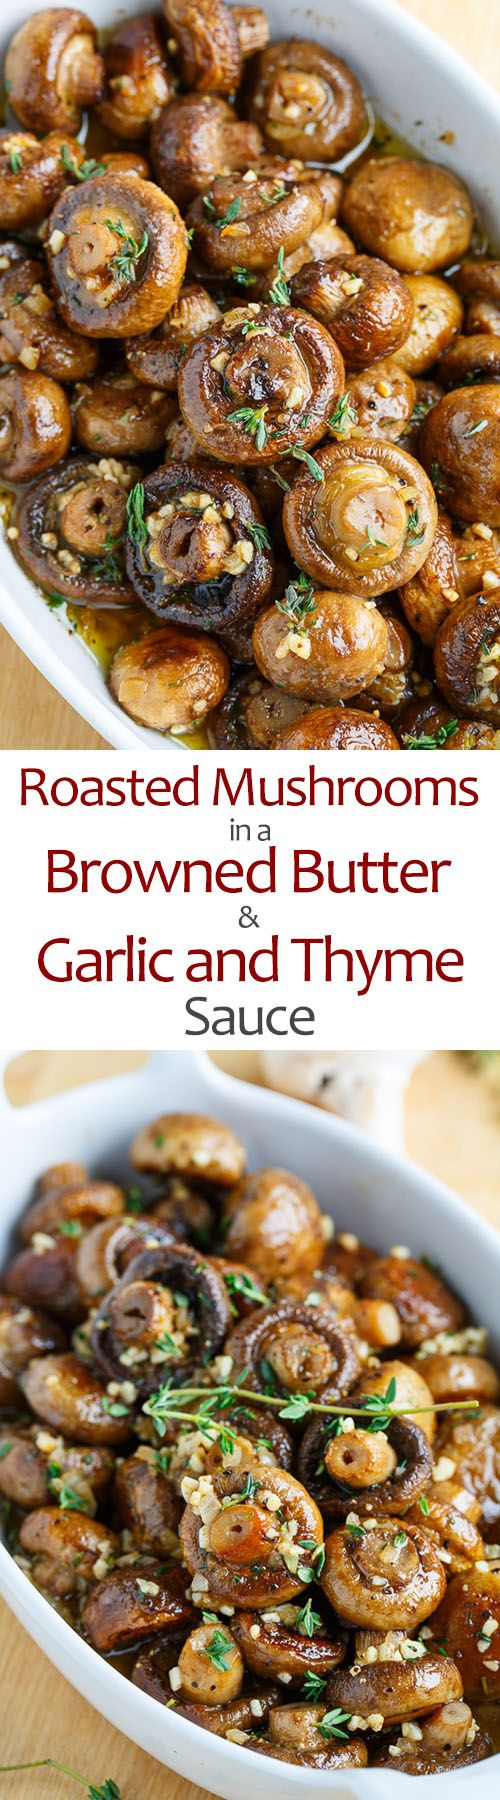 Roasted Mushrooms in a Browned Butter  Garlic and Thyme Sauce